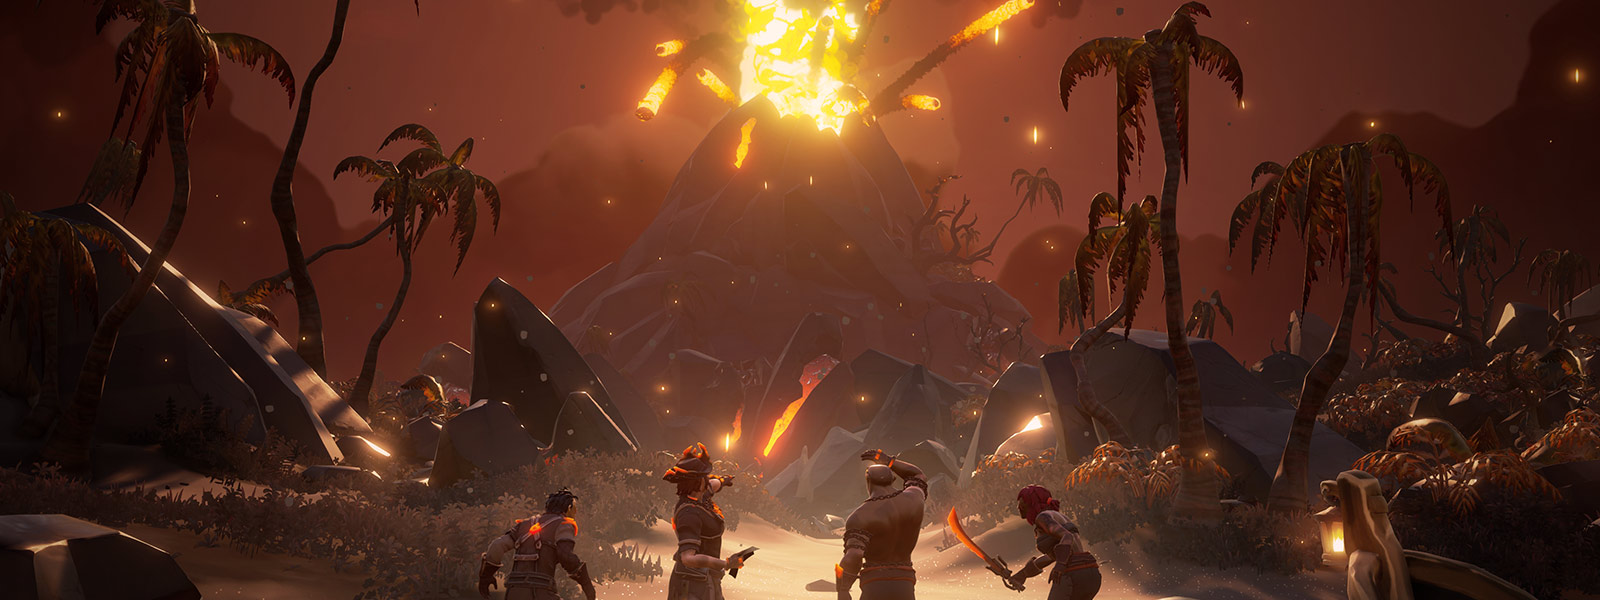 Quatre personnages de Sea of Thieves devant une explosion volcanique